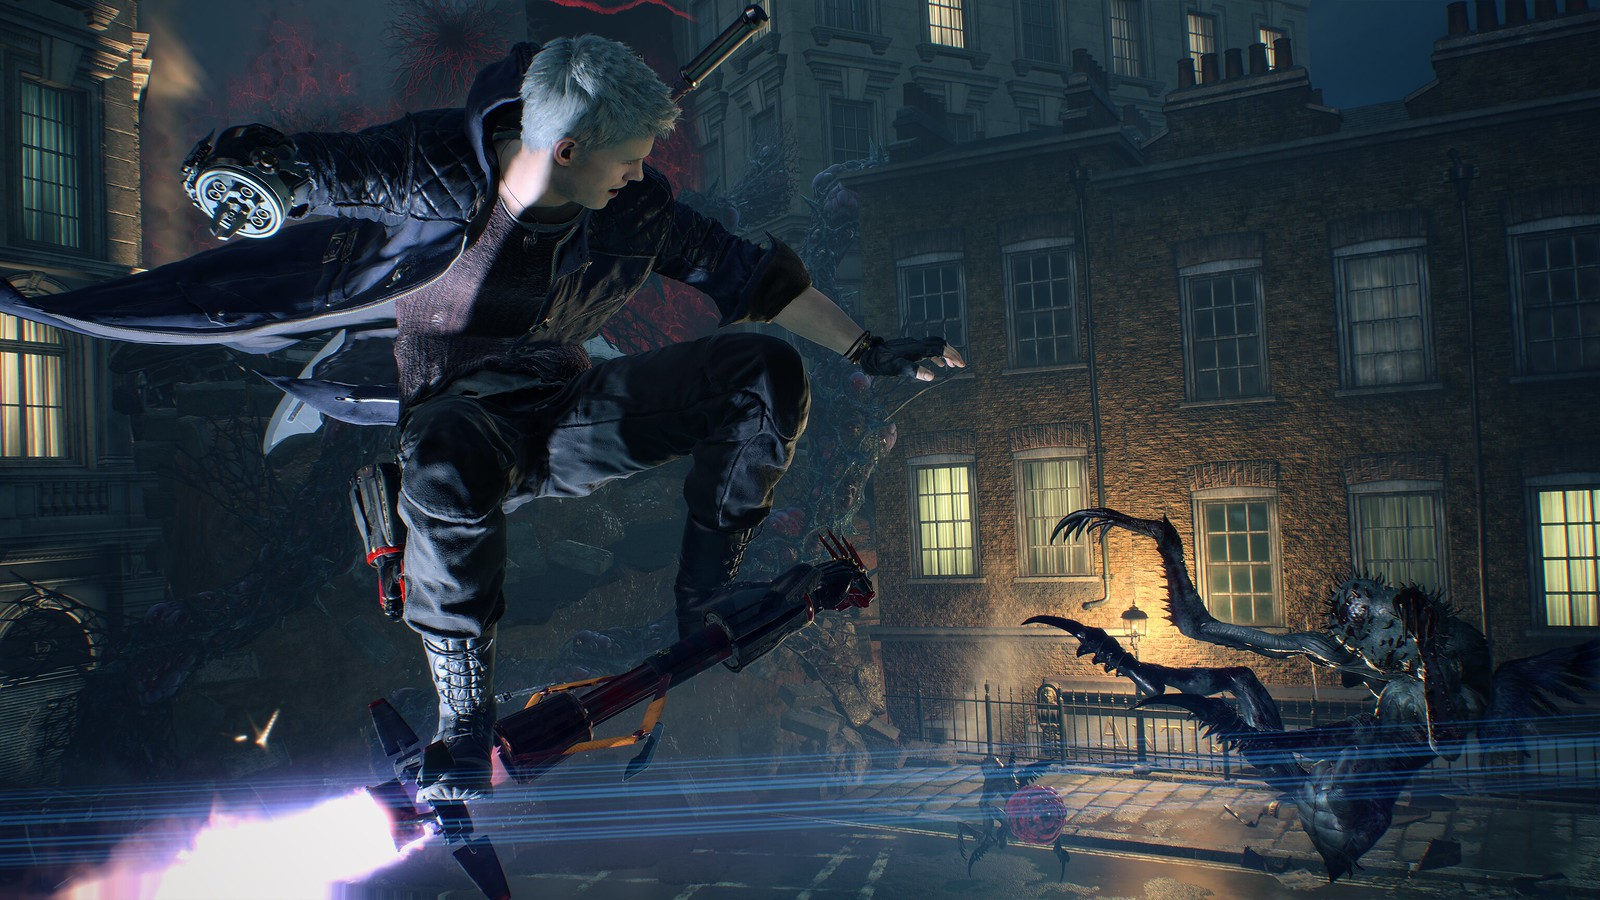 Devil May Cry 5's producer answers 7 devilish questions as Capcom's